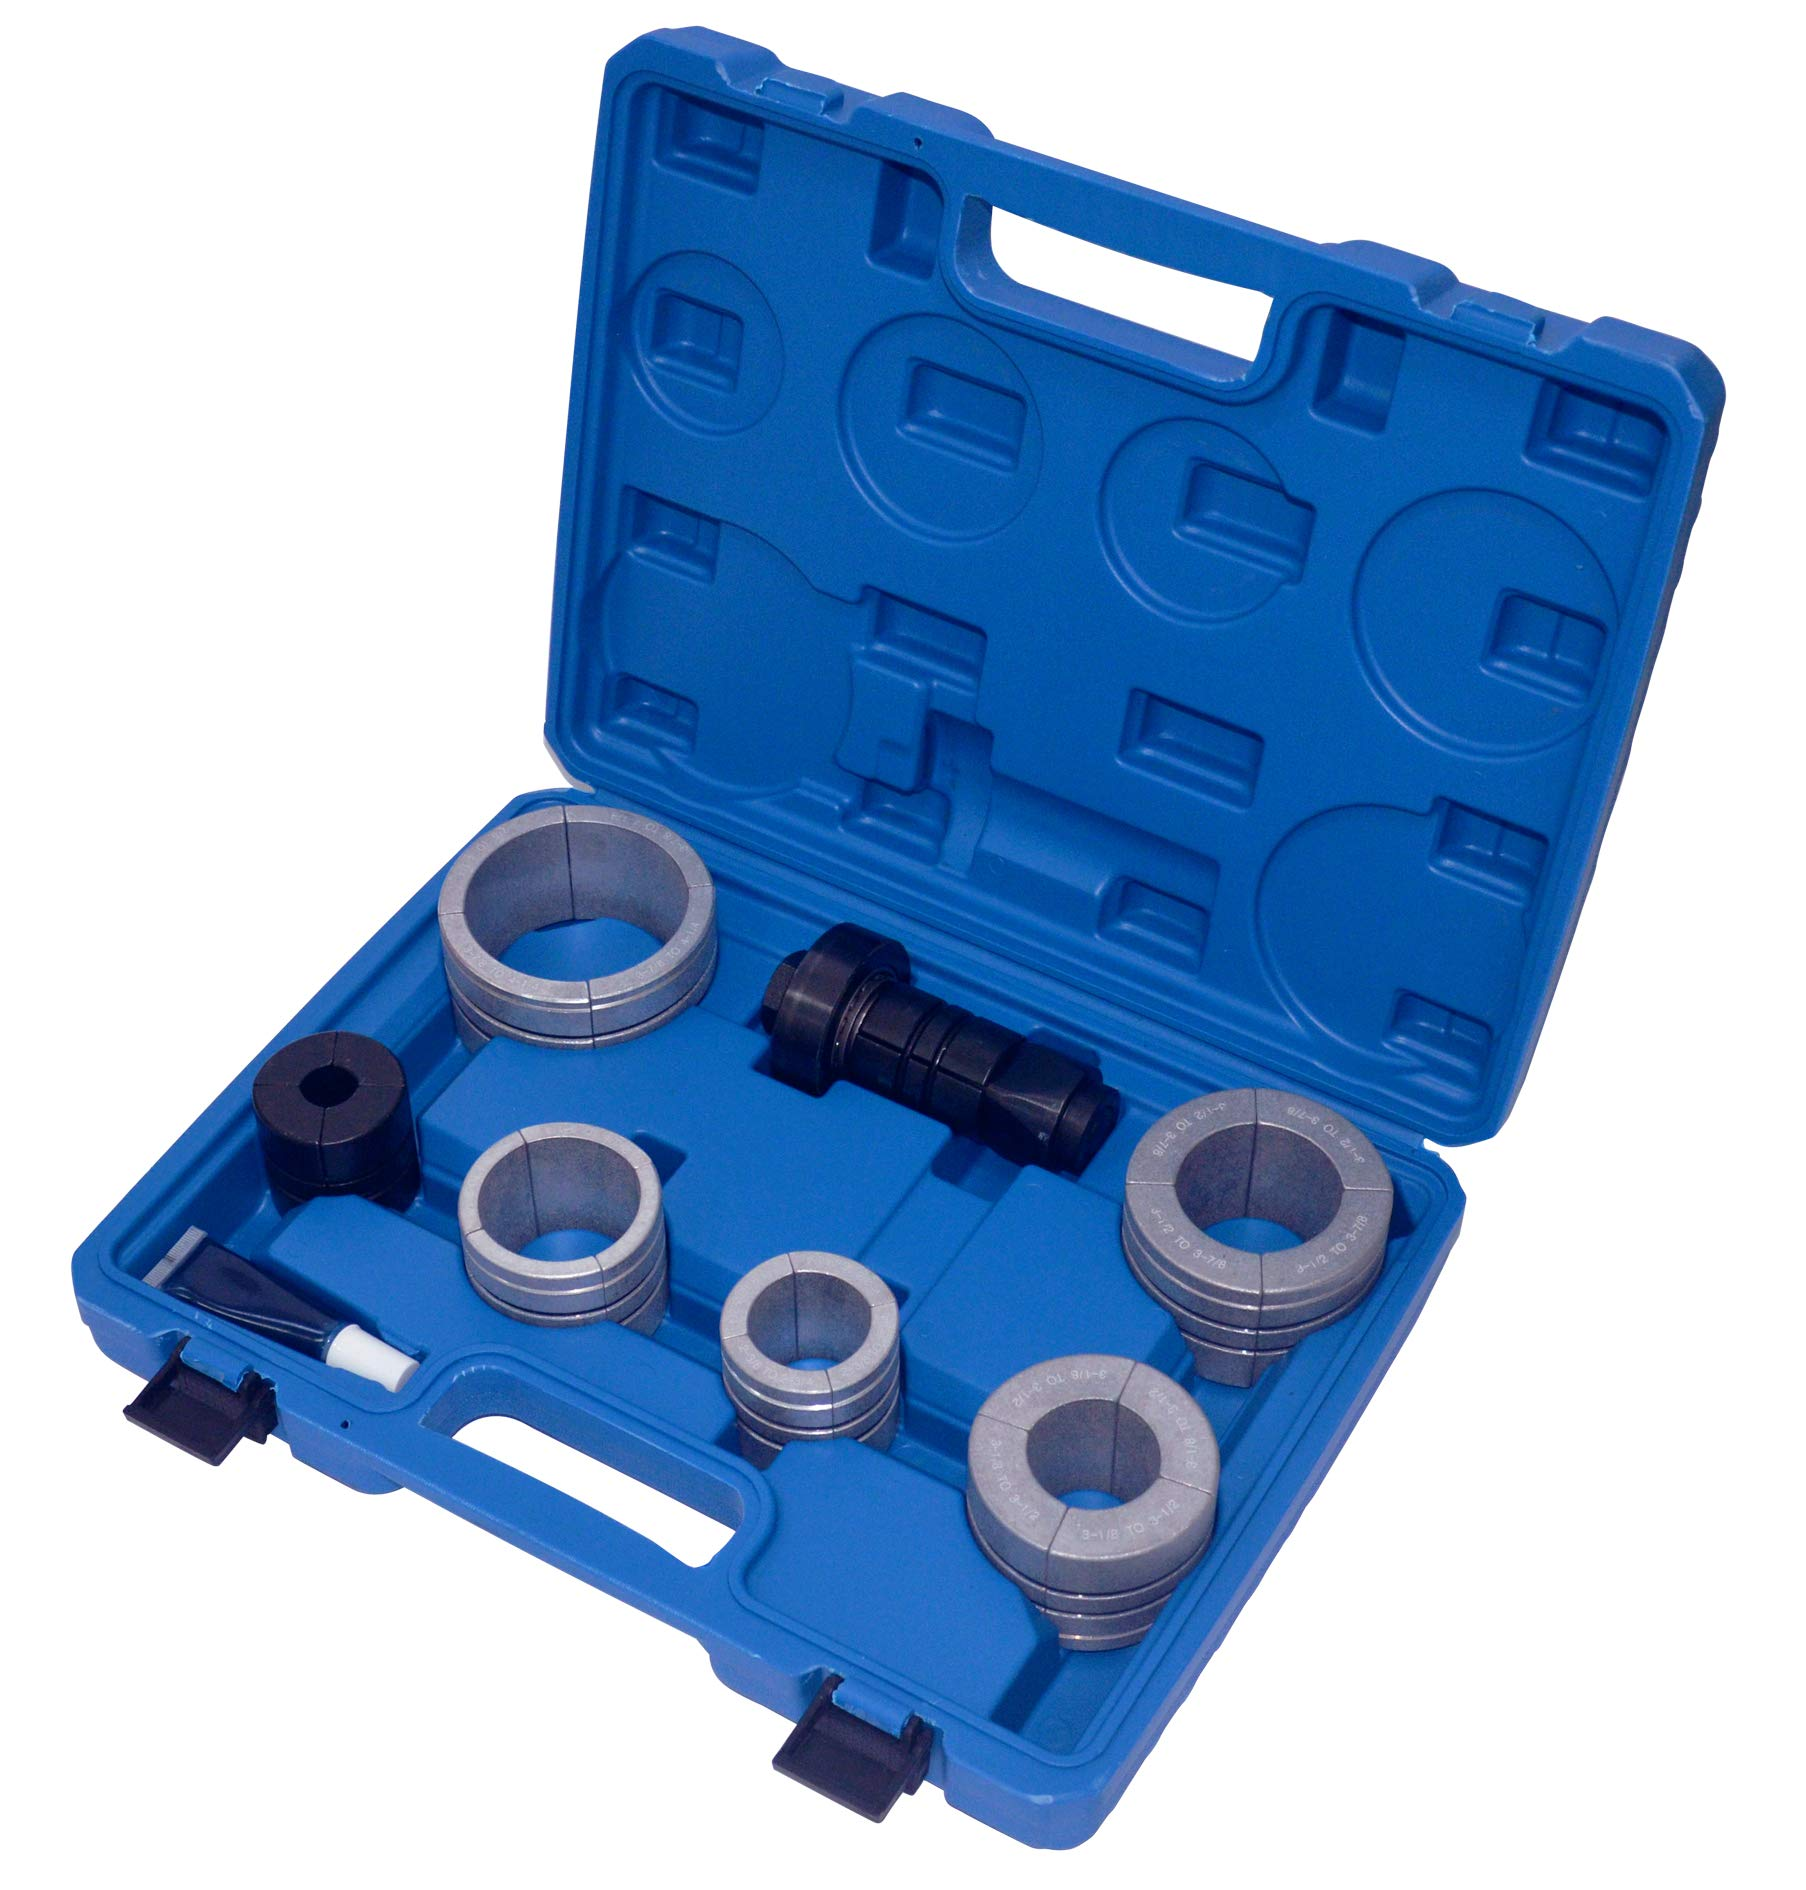 Astro Pneumatic Tool 78835 Exhaust Pipe Stretcher Kit by Astro Pneumatic Tool (Image #1)